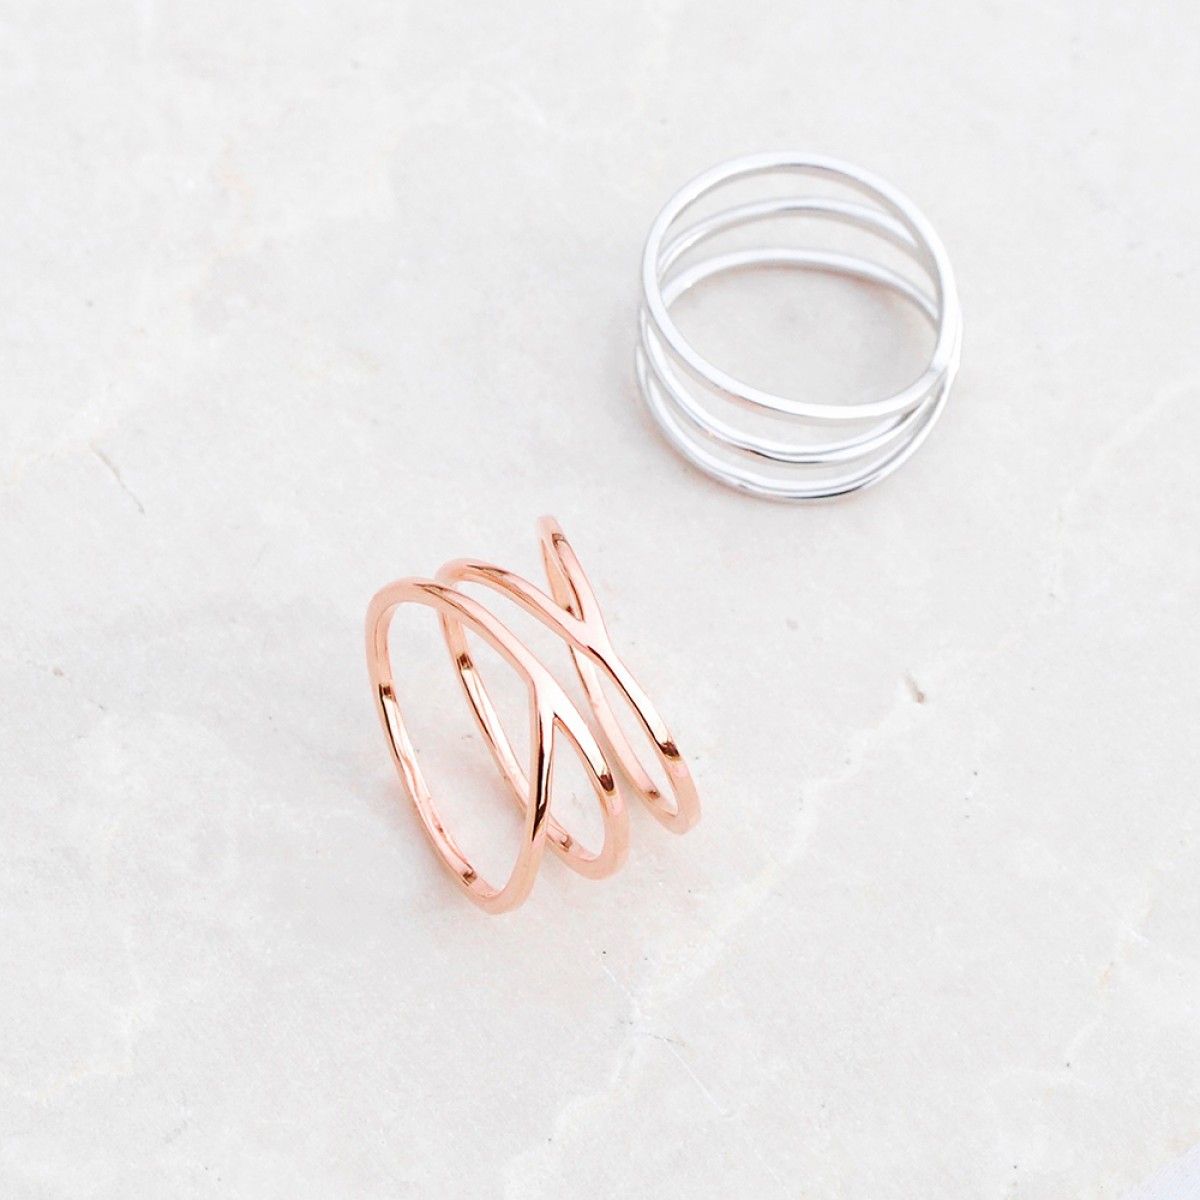 iloveblossom TRUE BEAUTY RING // silver